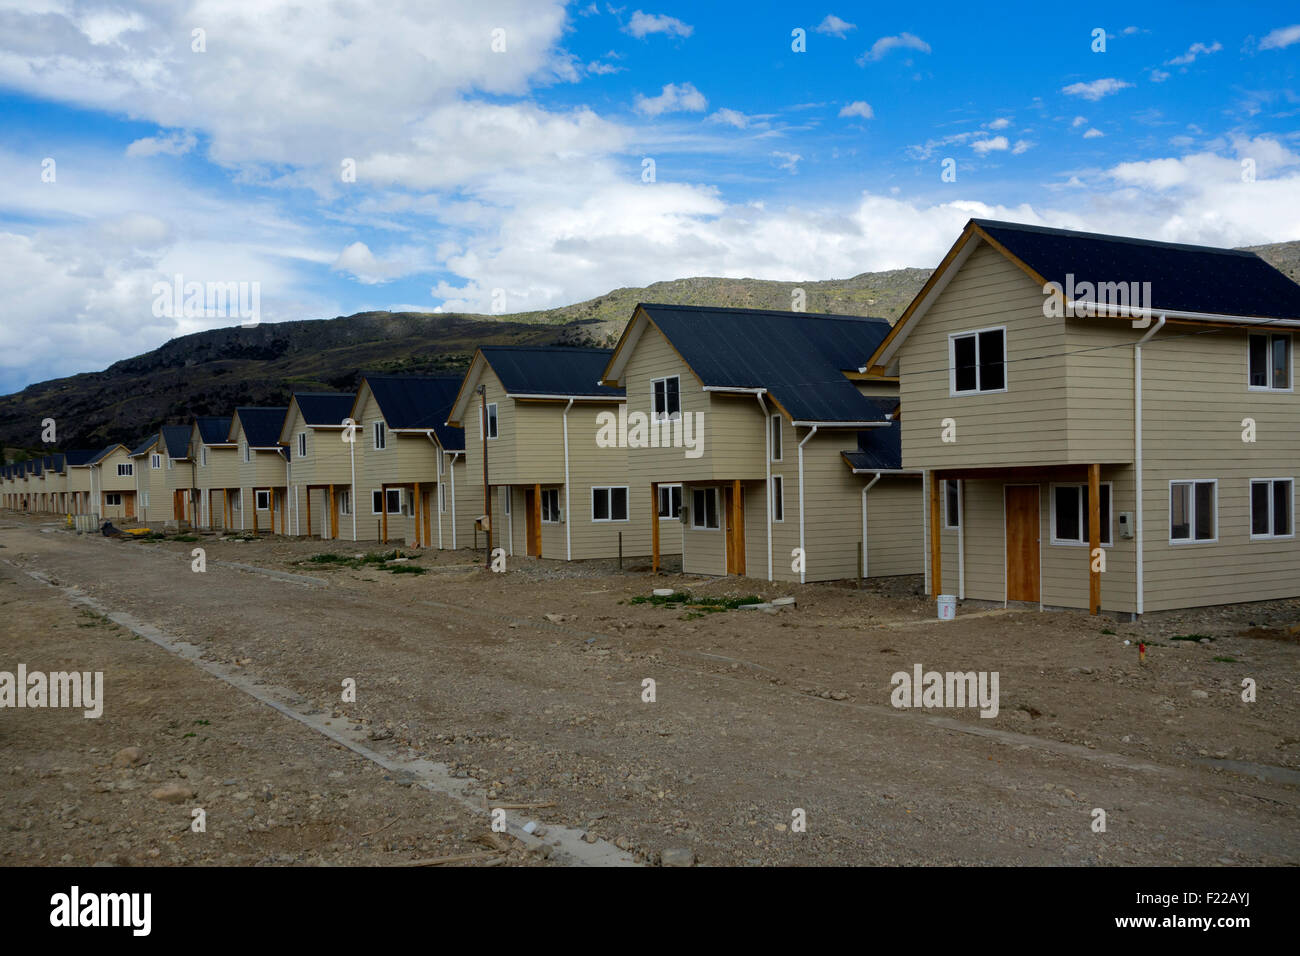 Prefabricated houses. Patagonia. Chile - Stock Image